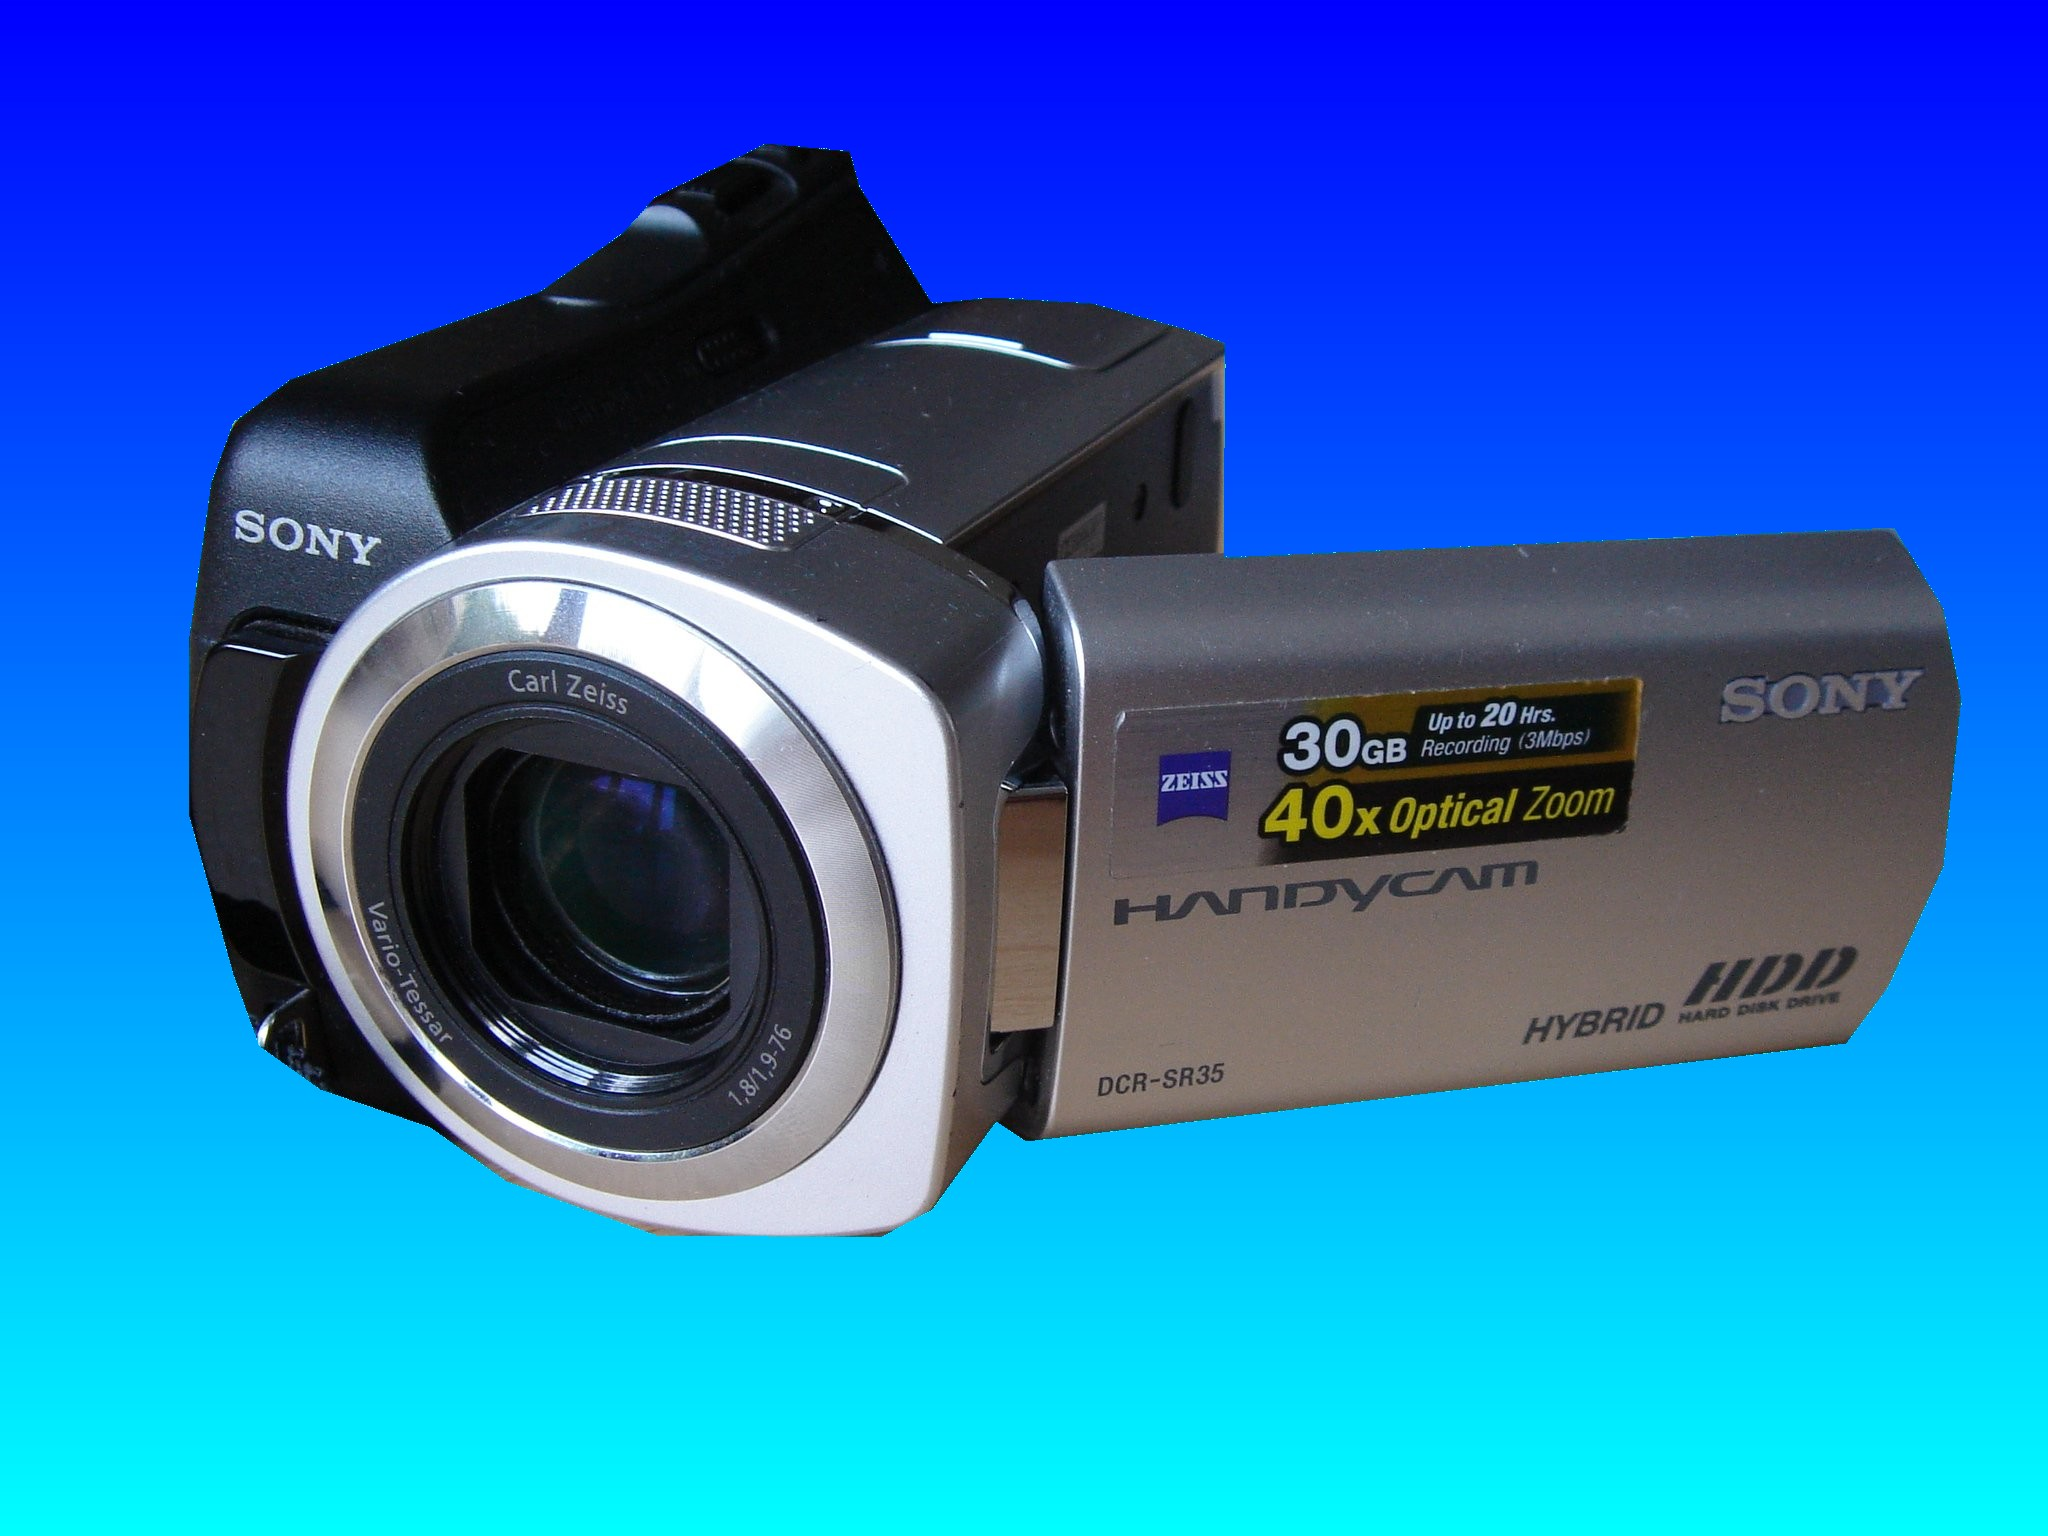 A Sony Handycam DCR-SR35 which had been used to record a wedding video. Later the video was deleted by accident and so the camera was sent to us to recover the movie.